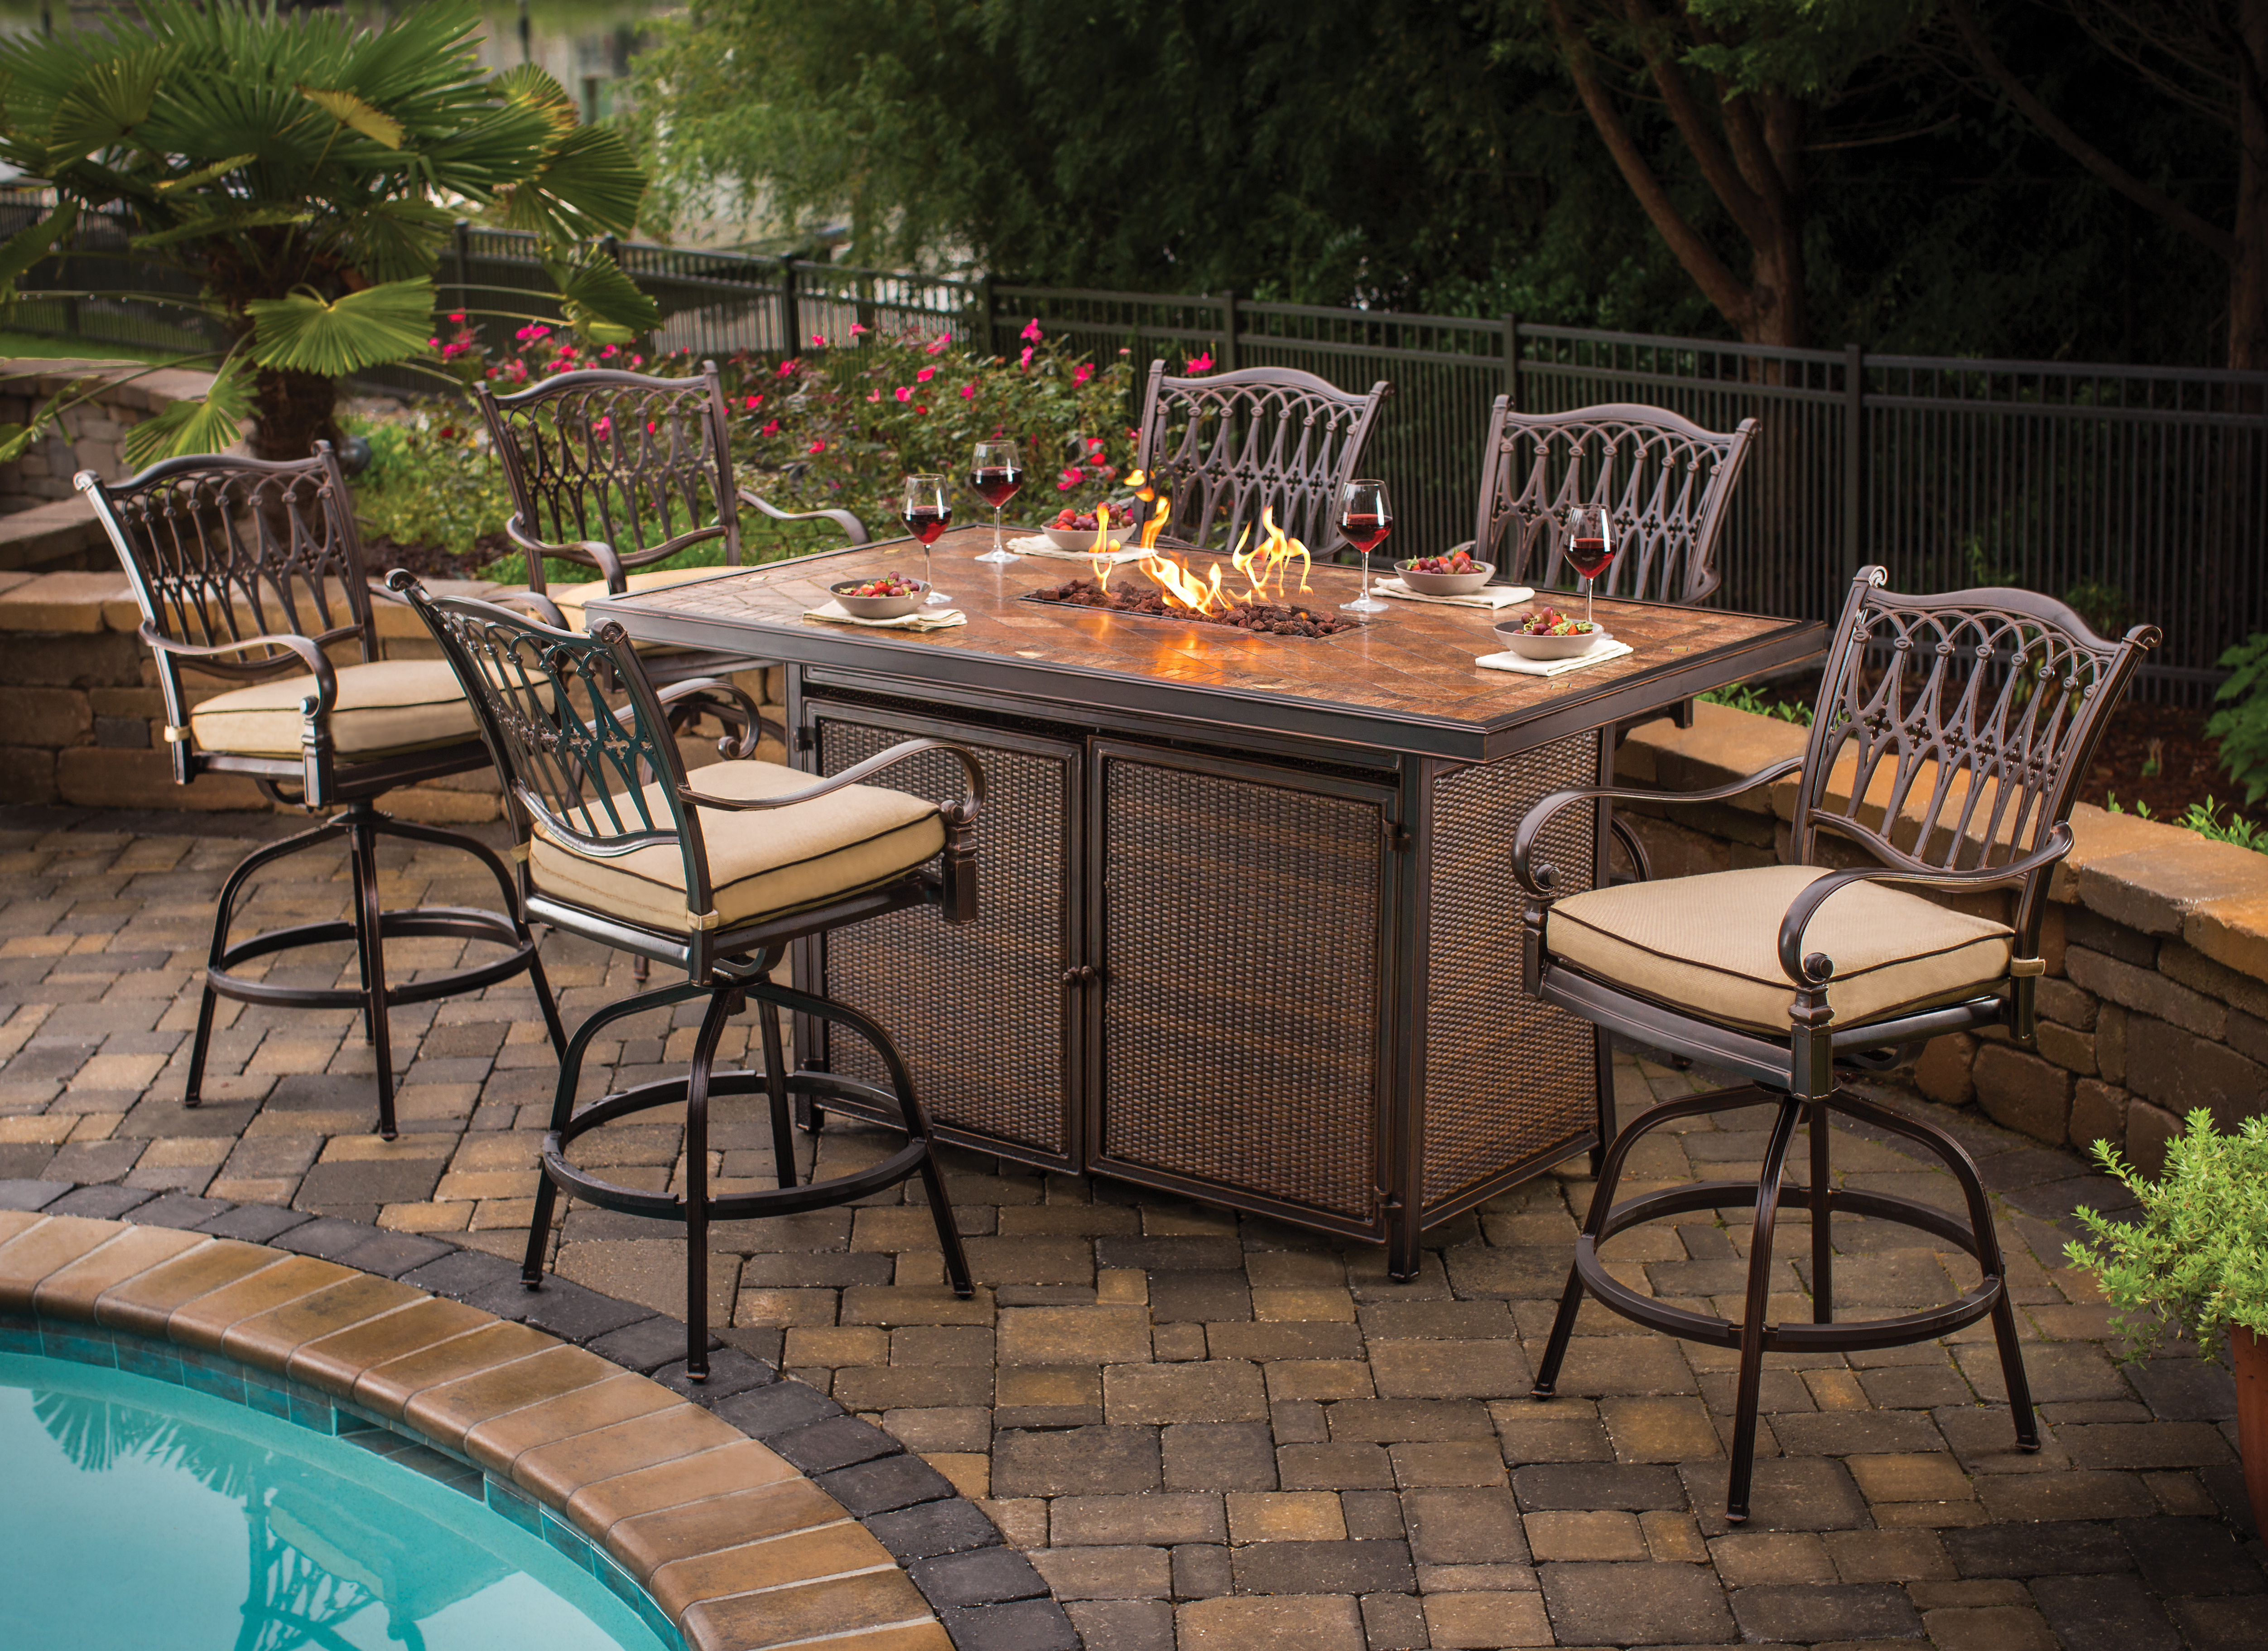 High Bar Table With Propane Fire Pit In It 1713kaartenstempnl throughout dimensions 5007 X 3645